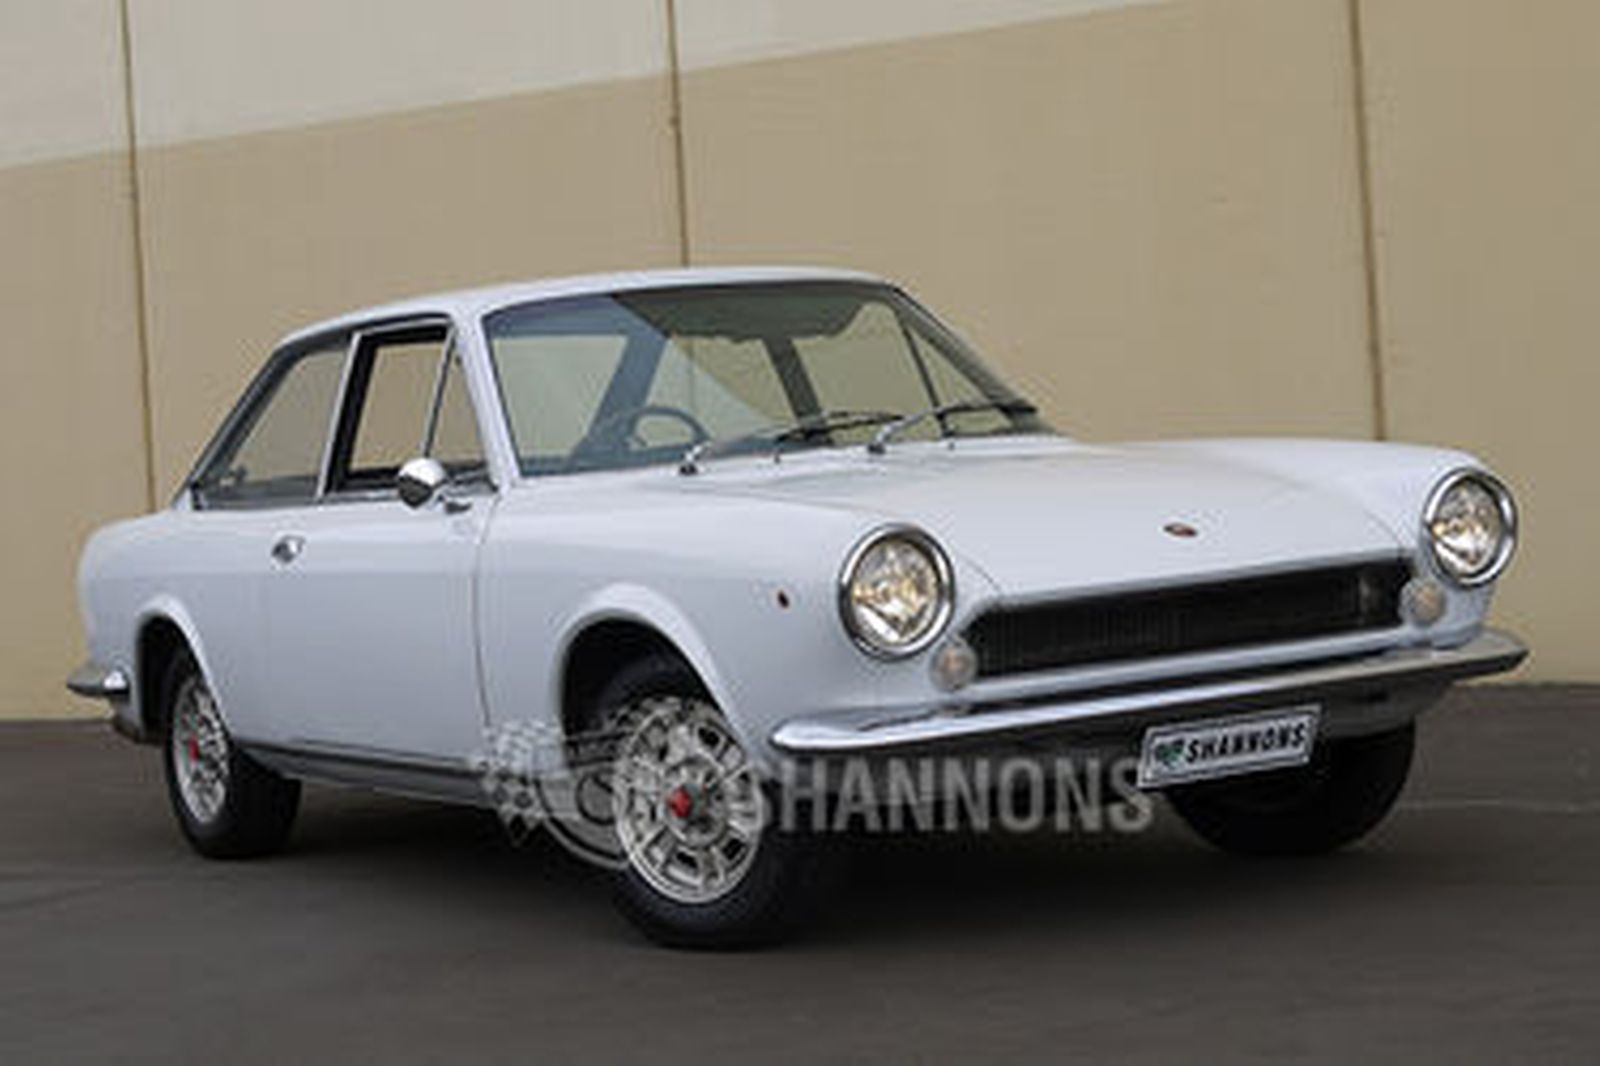 sold fiat 124 ac sports coupe auctions lot 20 shannons. Black Bedroom Furniture Sets. Home Design Ideas